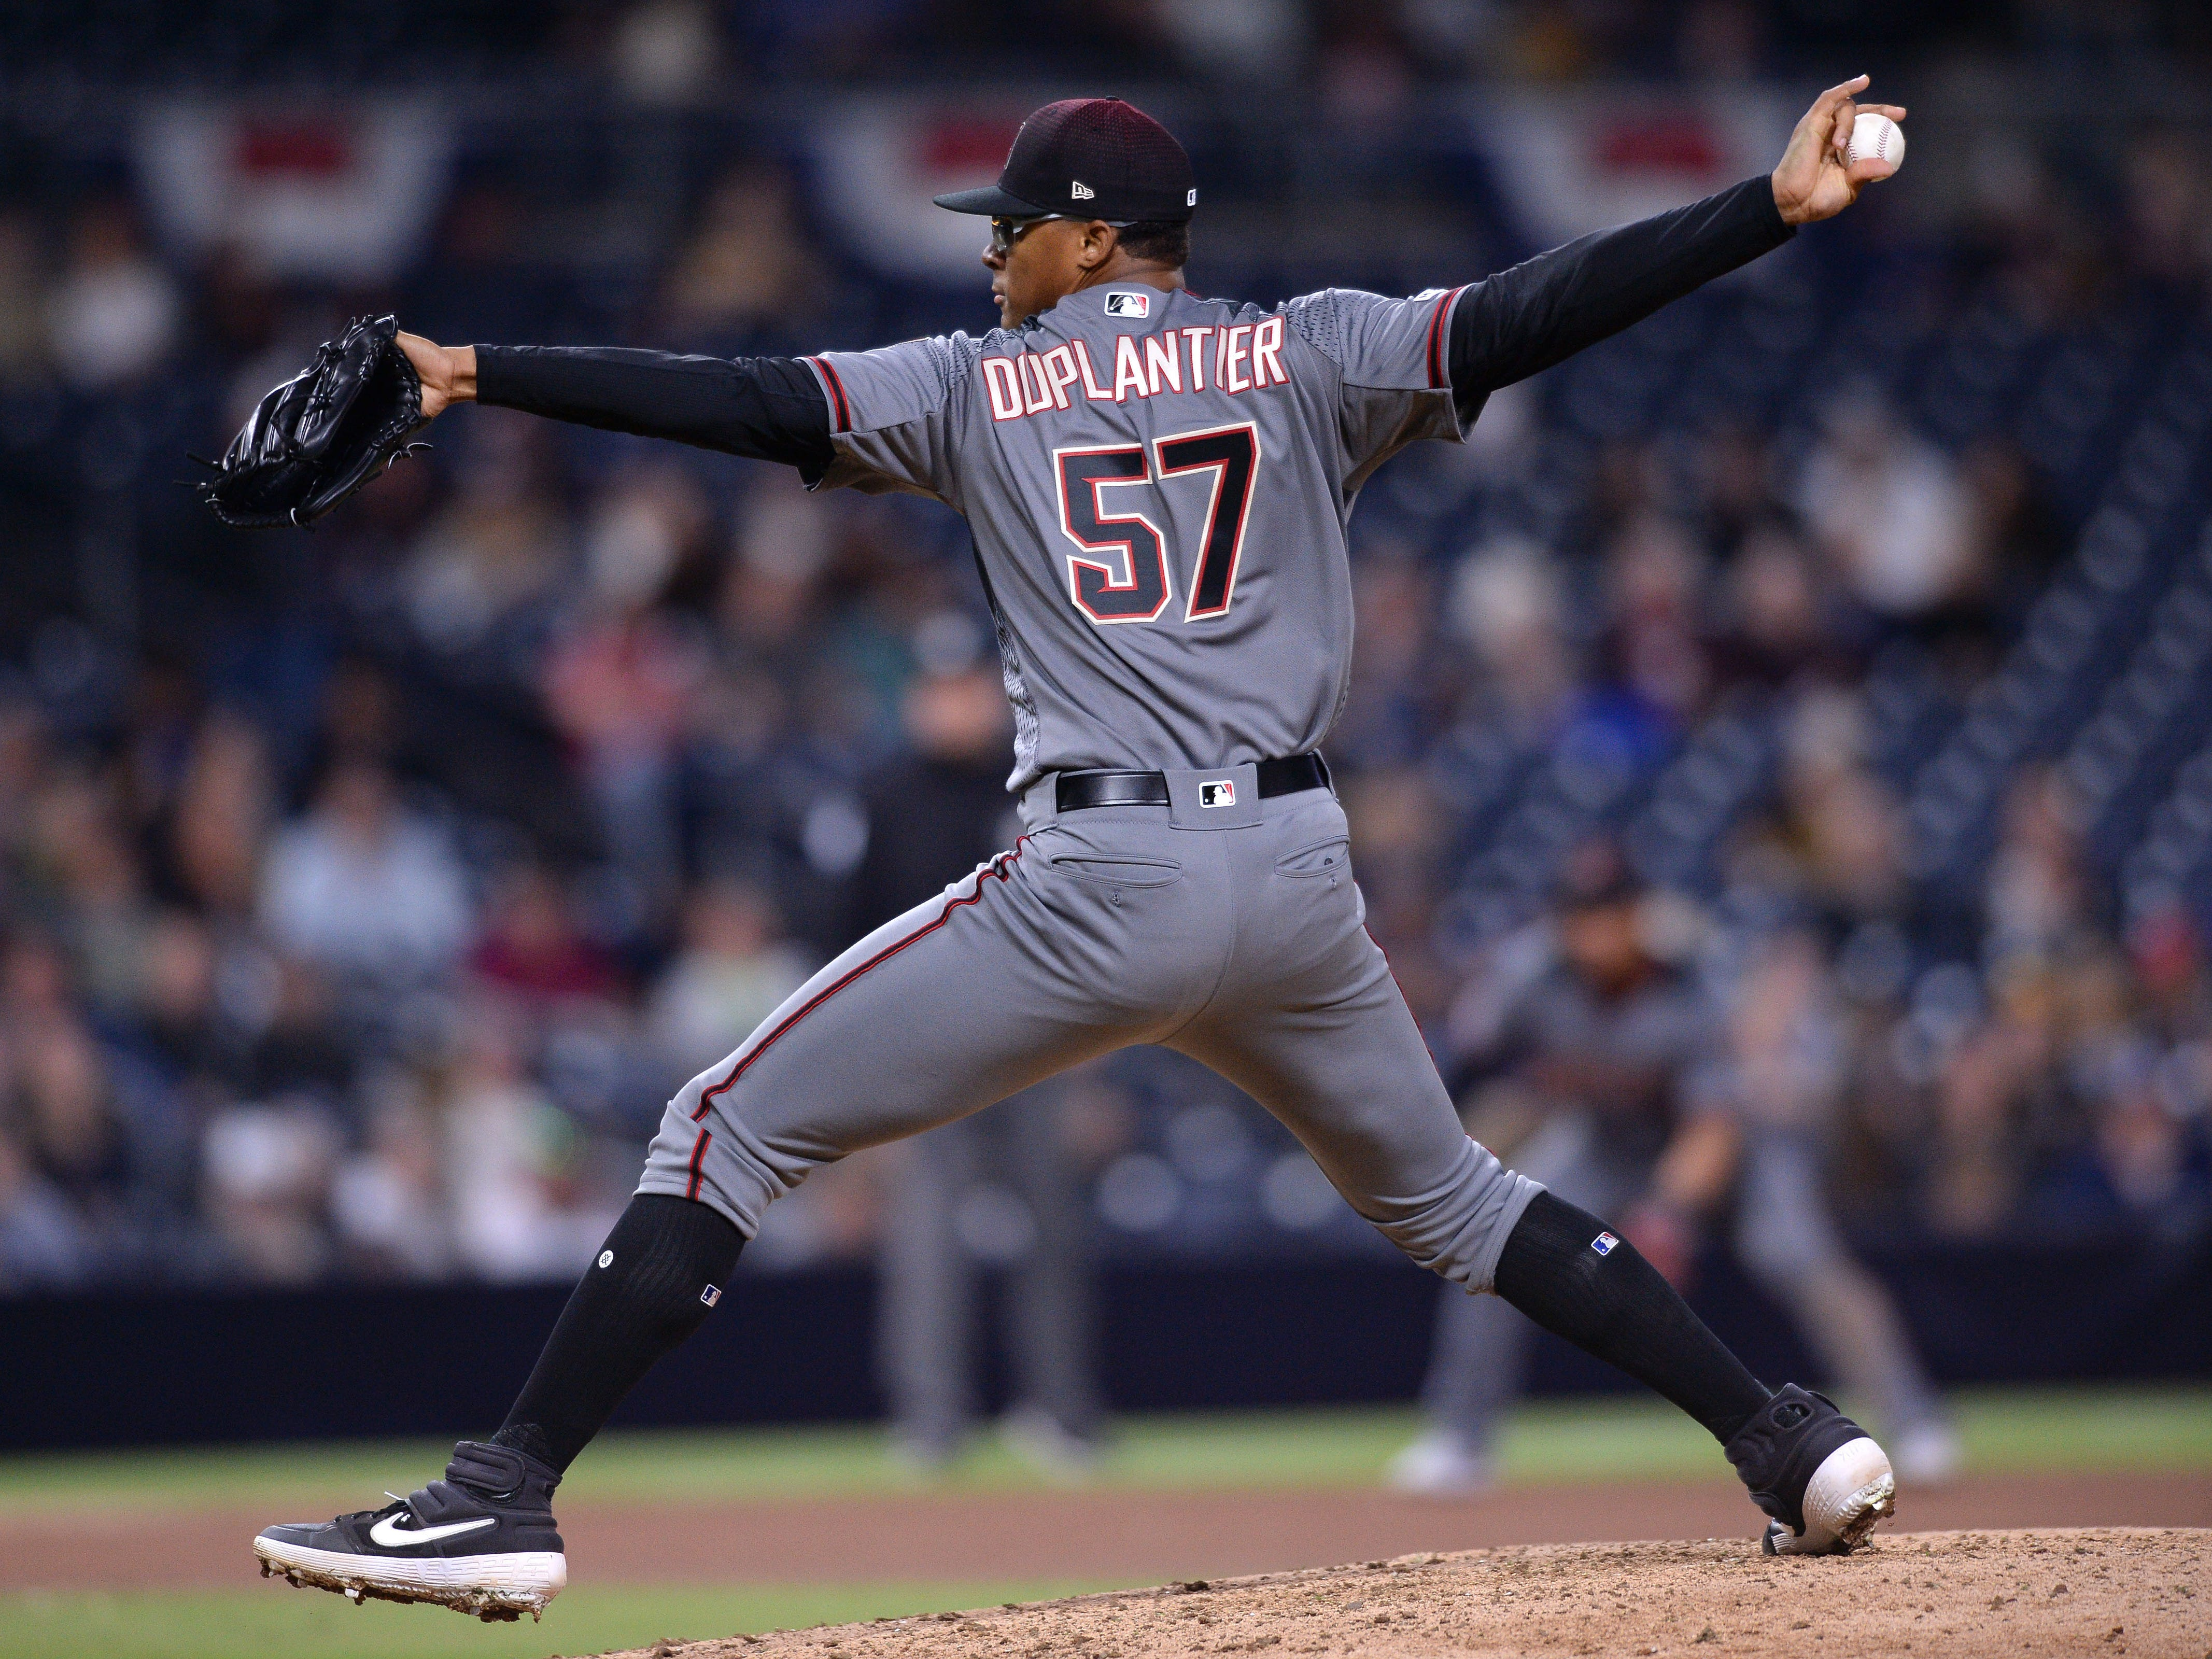 Diamondbacks relief pitcher Jon Duplantier (57) works against a Padres batter during the seventh inning of his major league debut at Petco Park on Monday.